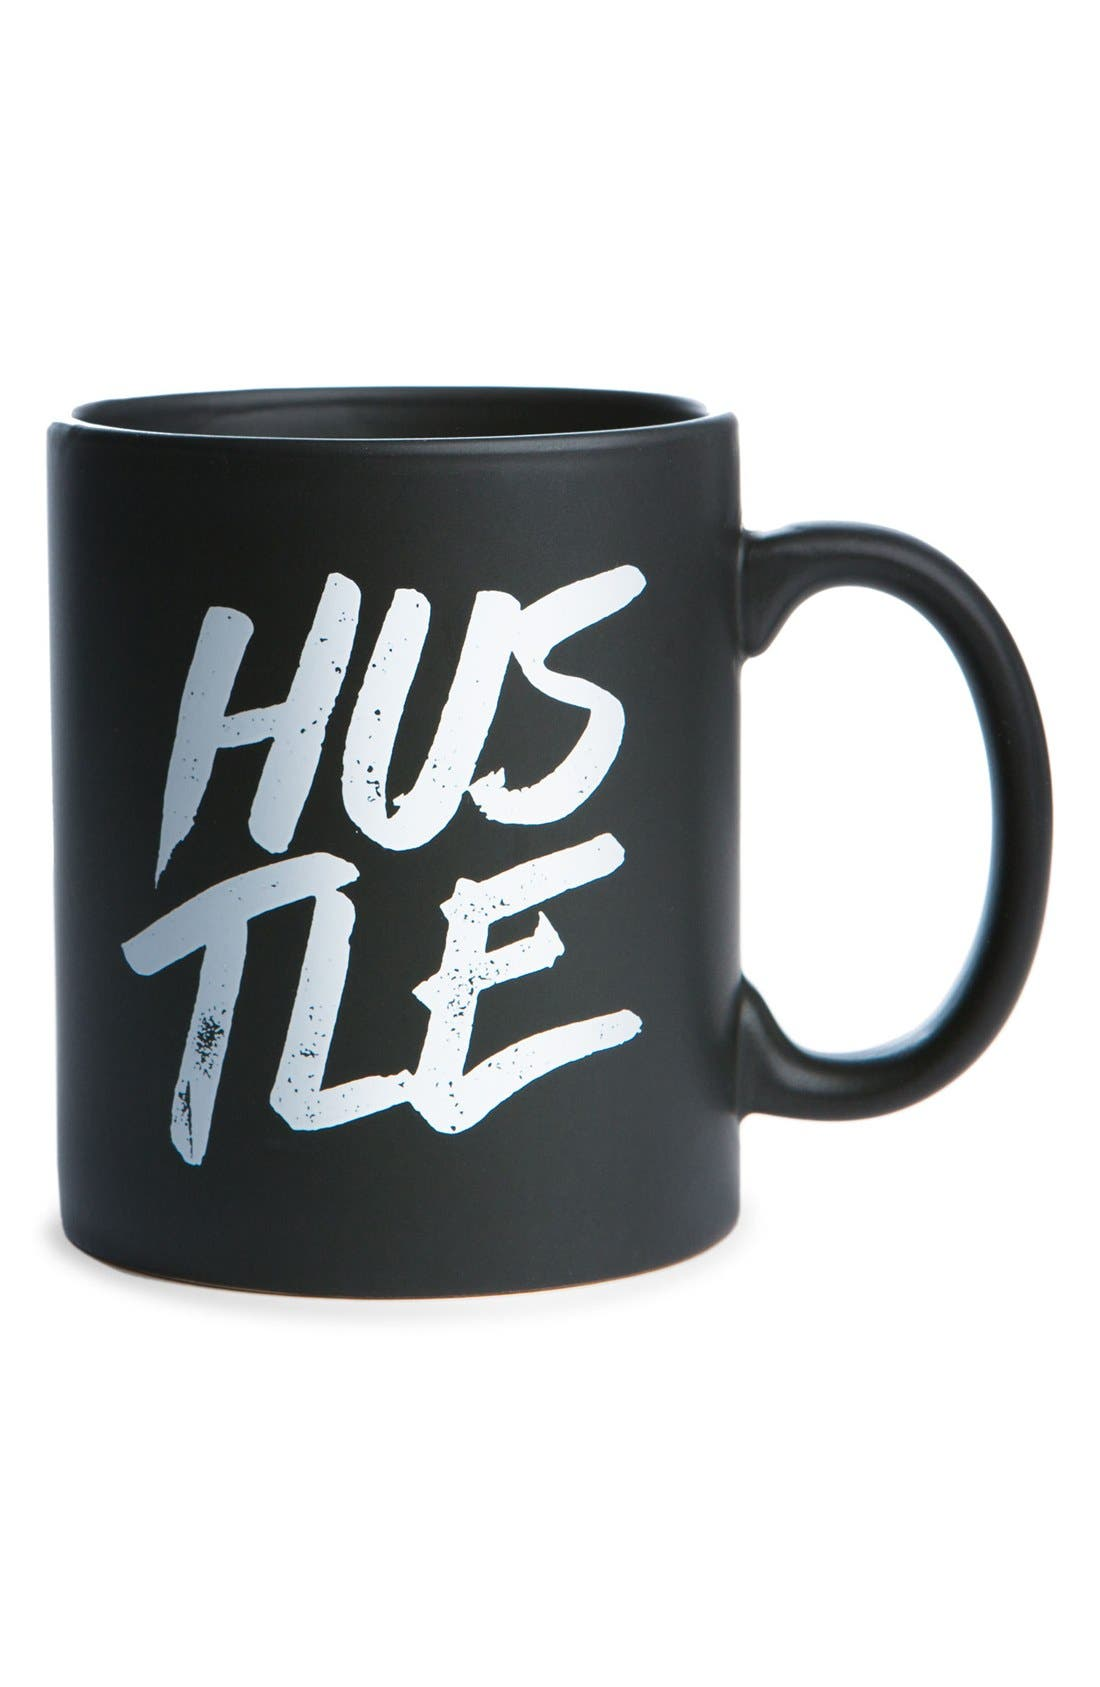 Main Image - The Created Co. 'Hustle' Mug